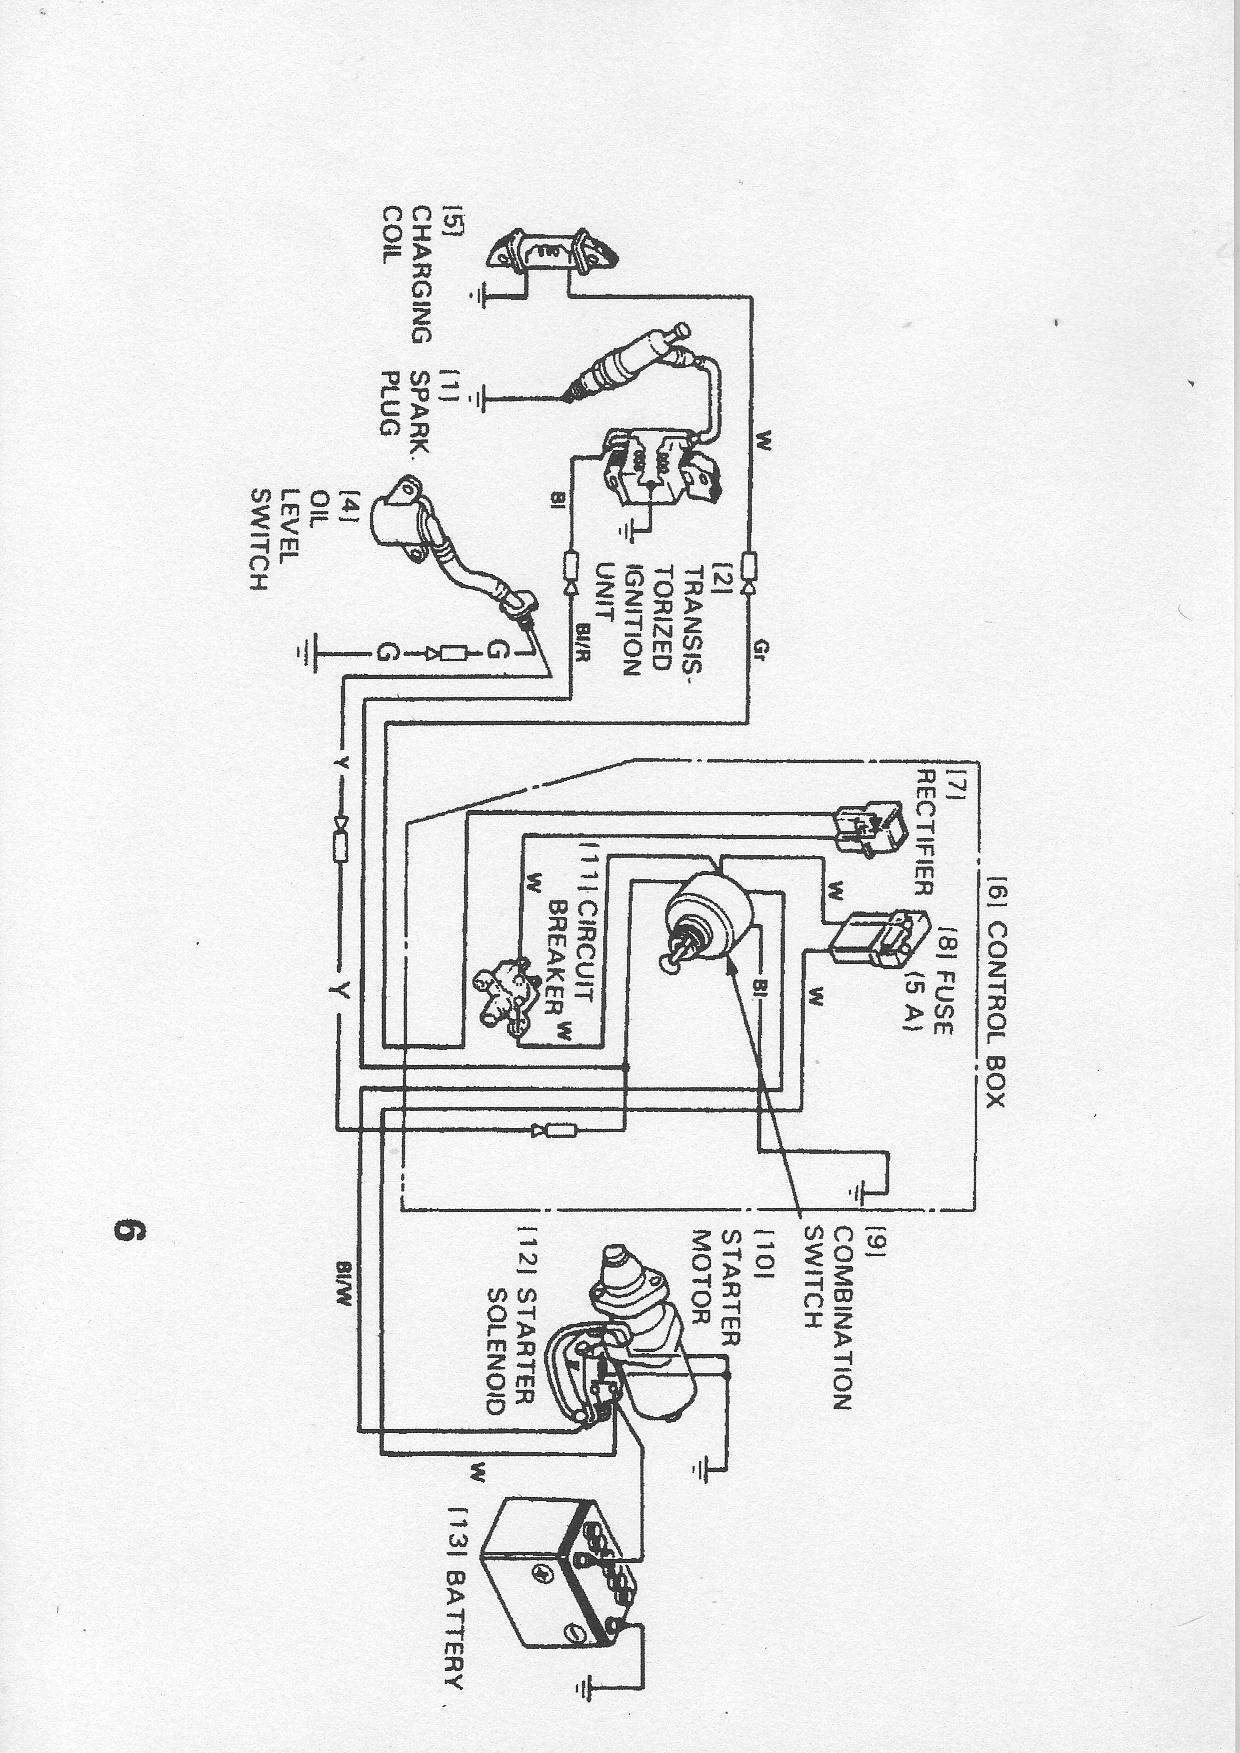 Honda gx engine diagram zb gasoline